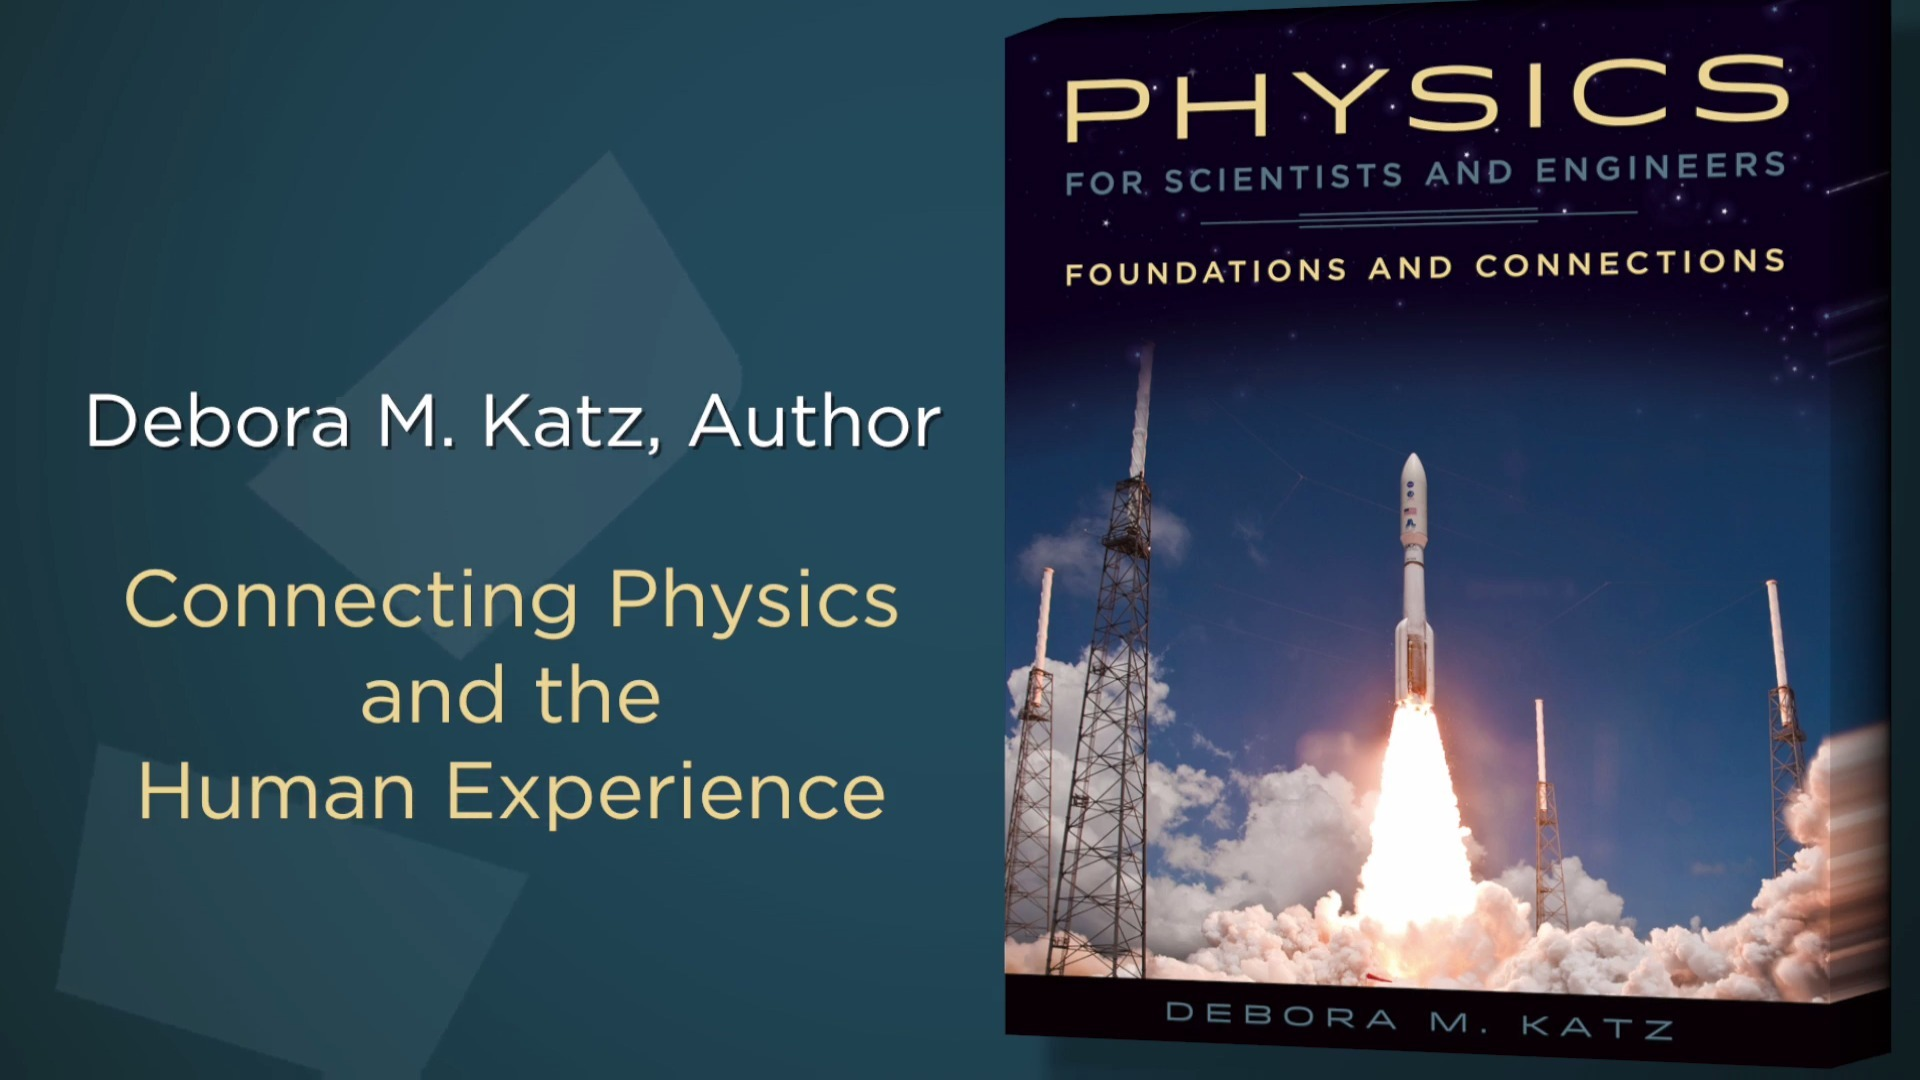 Debora Katz's Physics for Scientists and Engineers: Connecting Physics and the Human Experience